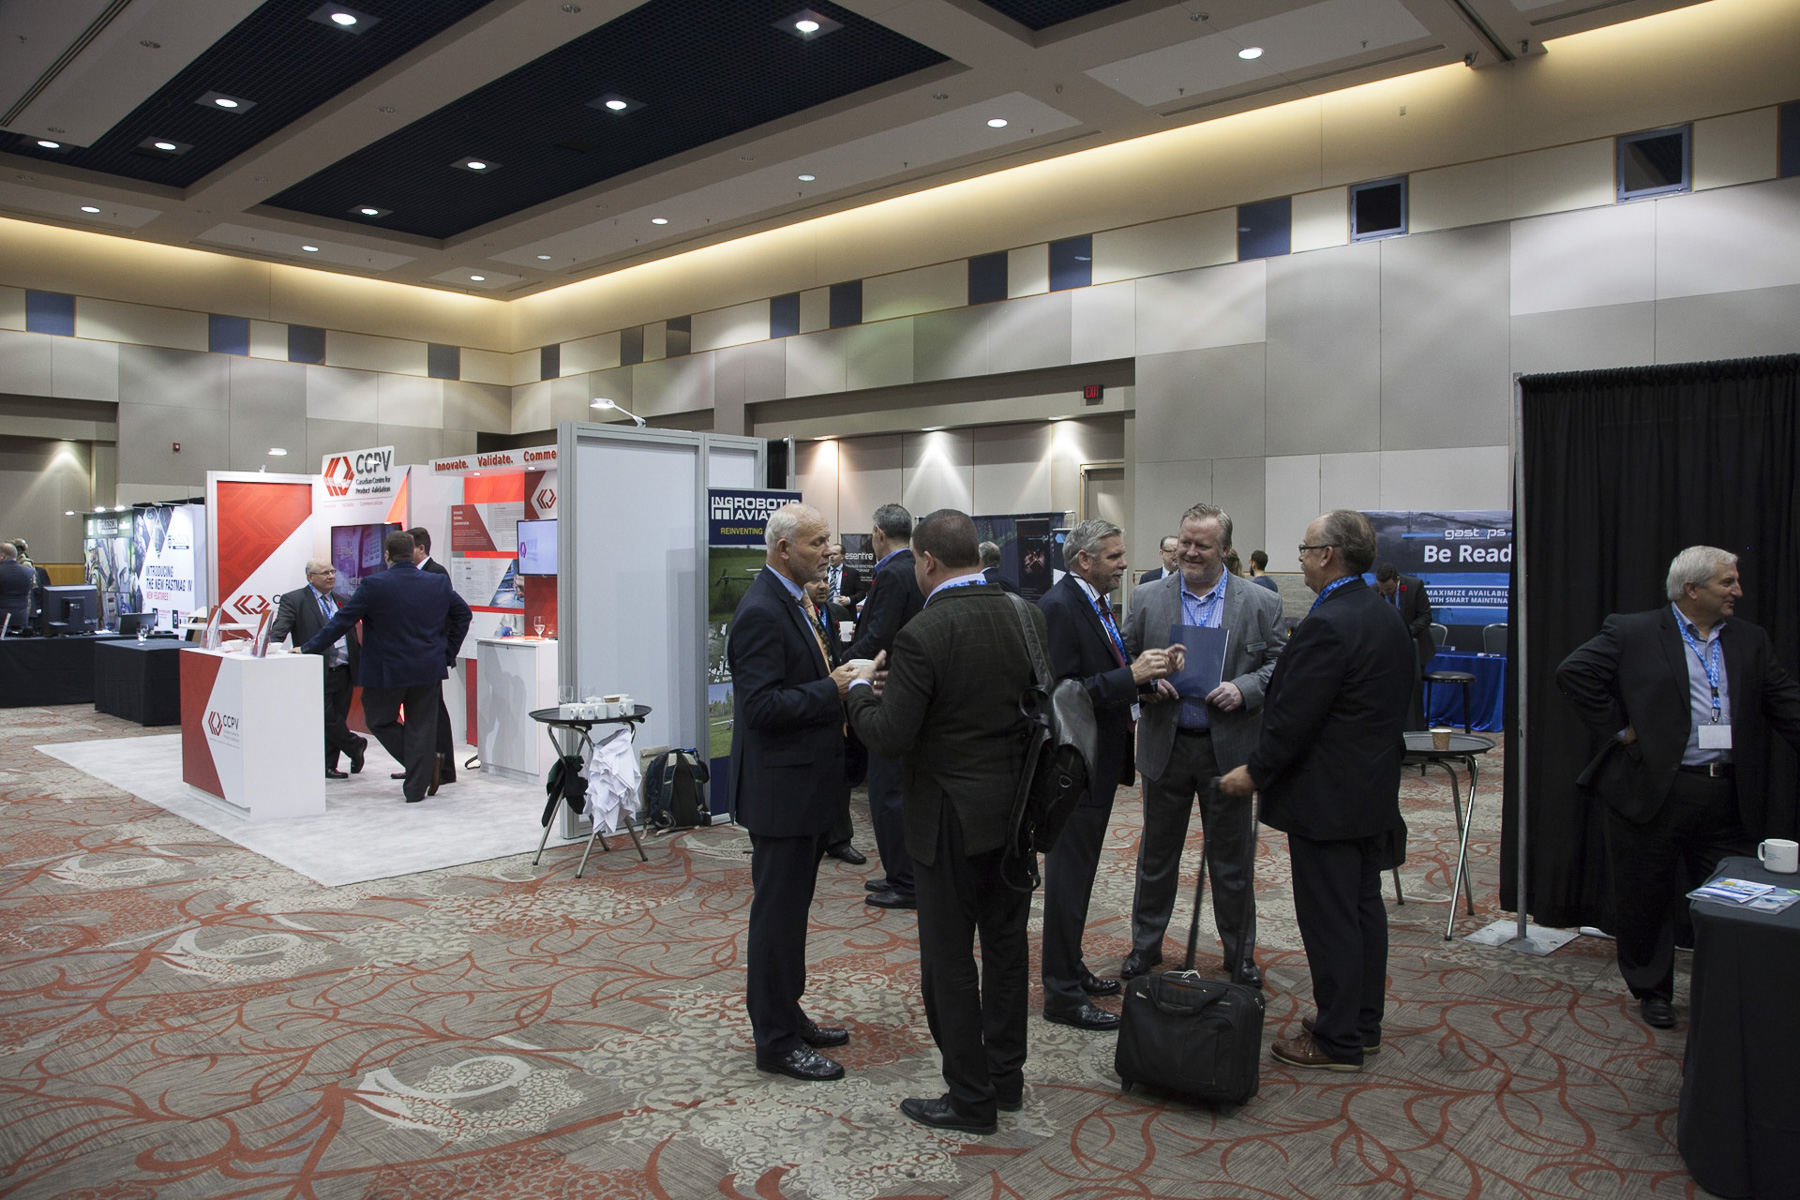 The Best Defence Conference is held each Fall in London, which is at the heart of Southern Ontario's defence-related industries.